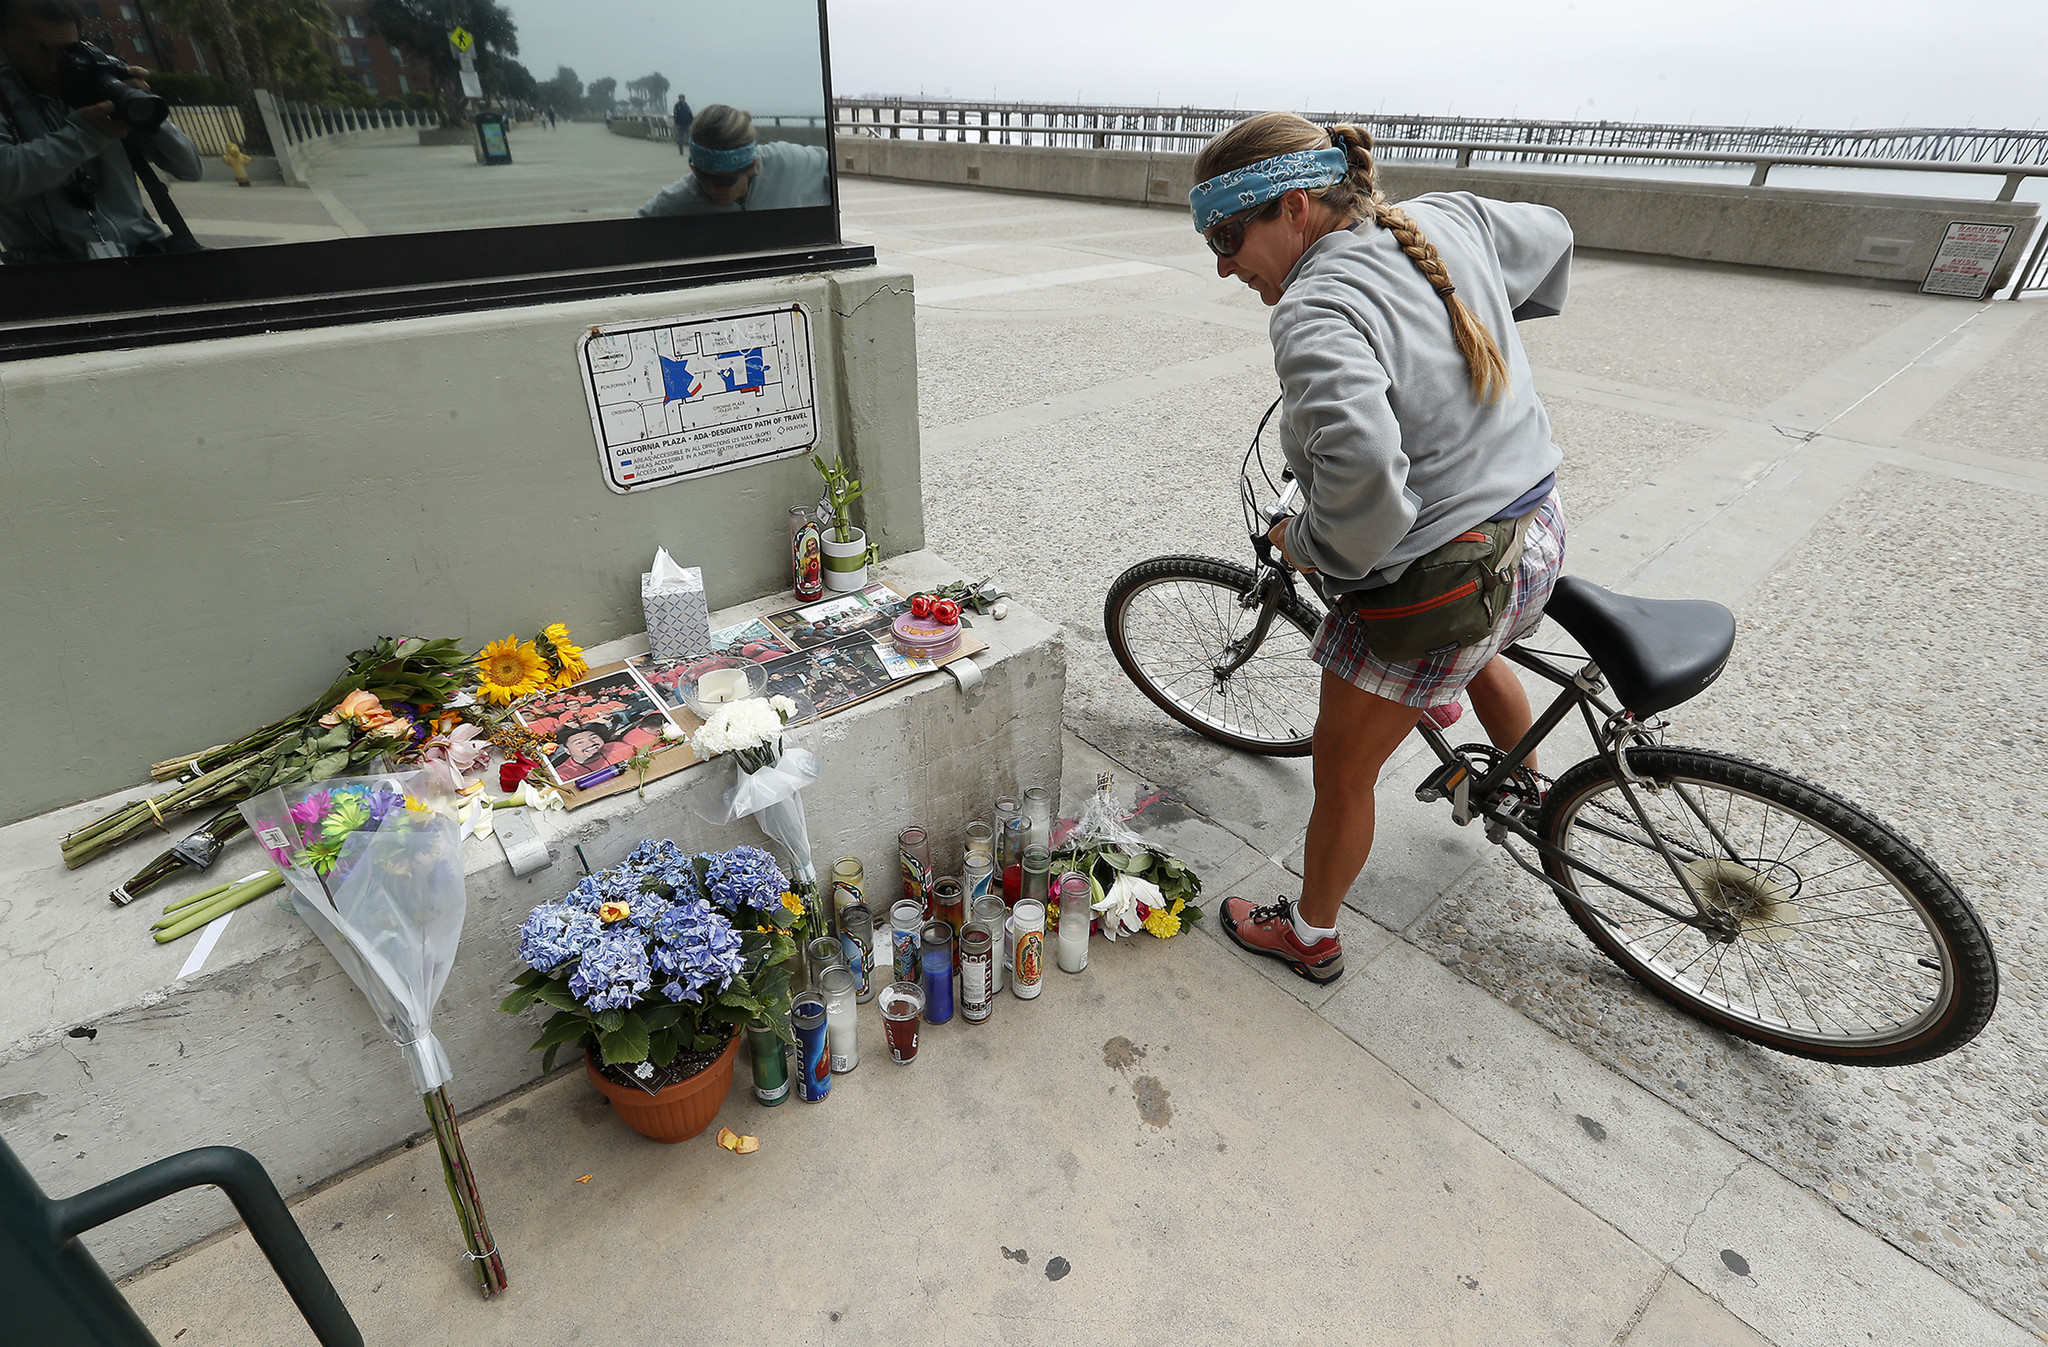 VENTURA, CA-APRIL 23, 2018: Alicia Carman of Ventura looks at a memorial outside of Aloha Steakhous